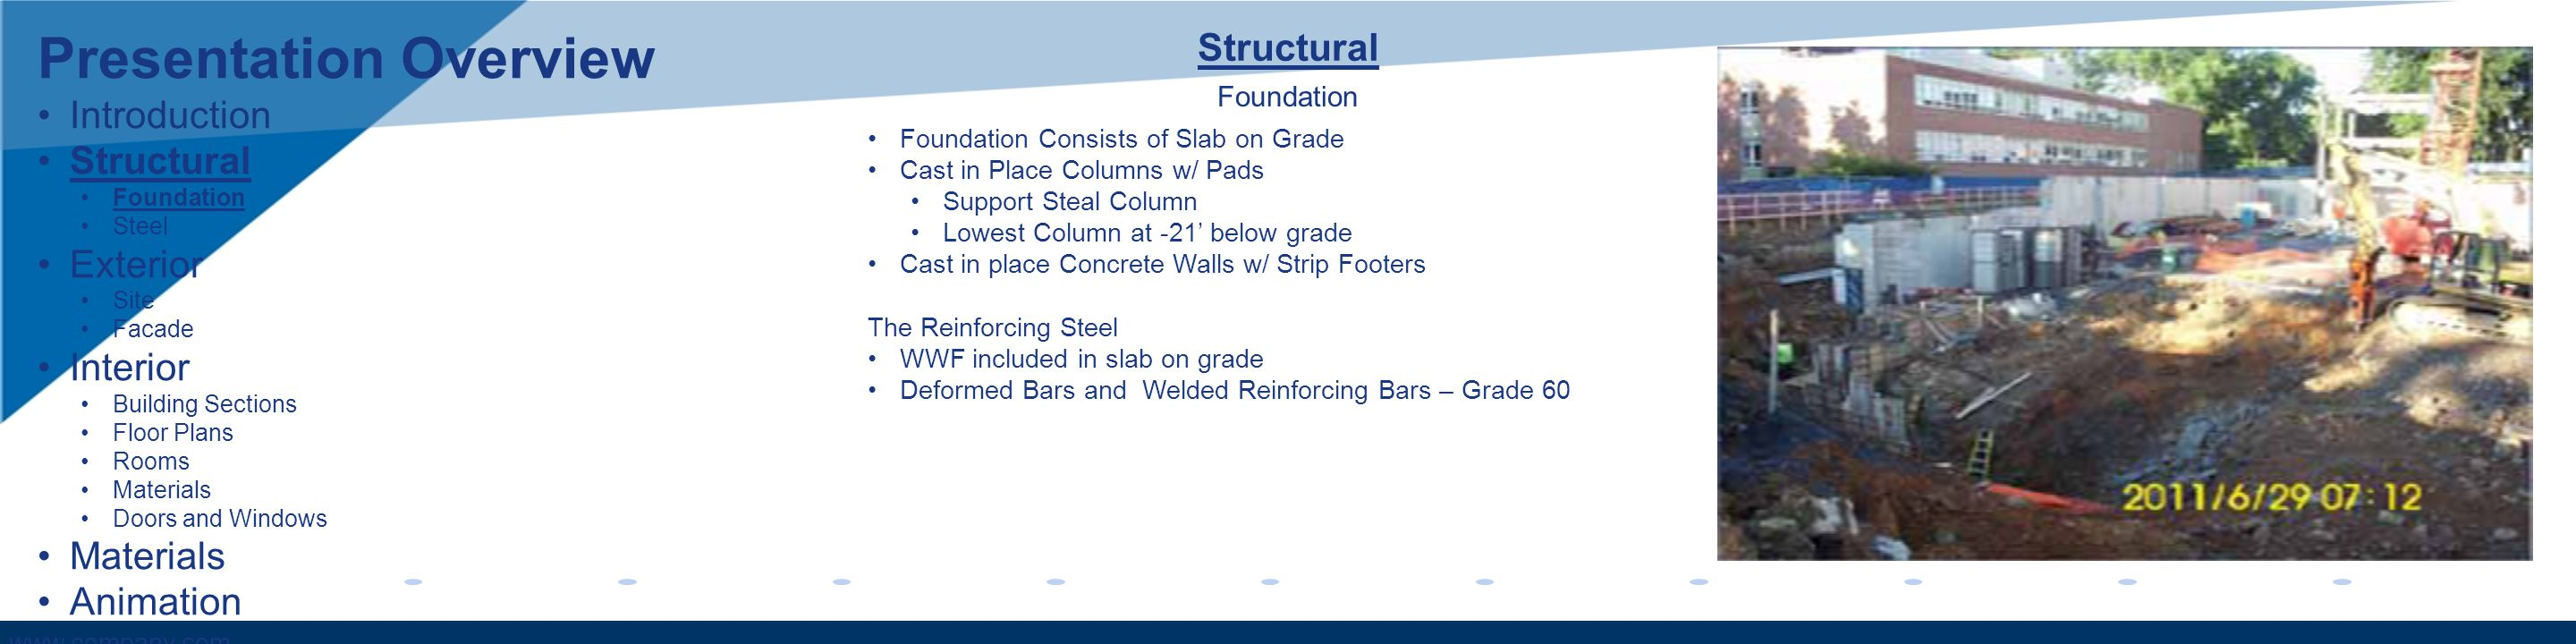 www.company.com Structural Foundation Foundation Consists of Slab on Grade Cast in Place Columns w/ Pads Support Steal Column Lowest Column at -21 bel